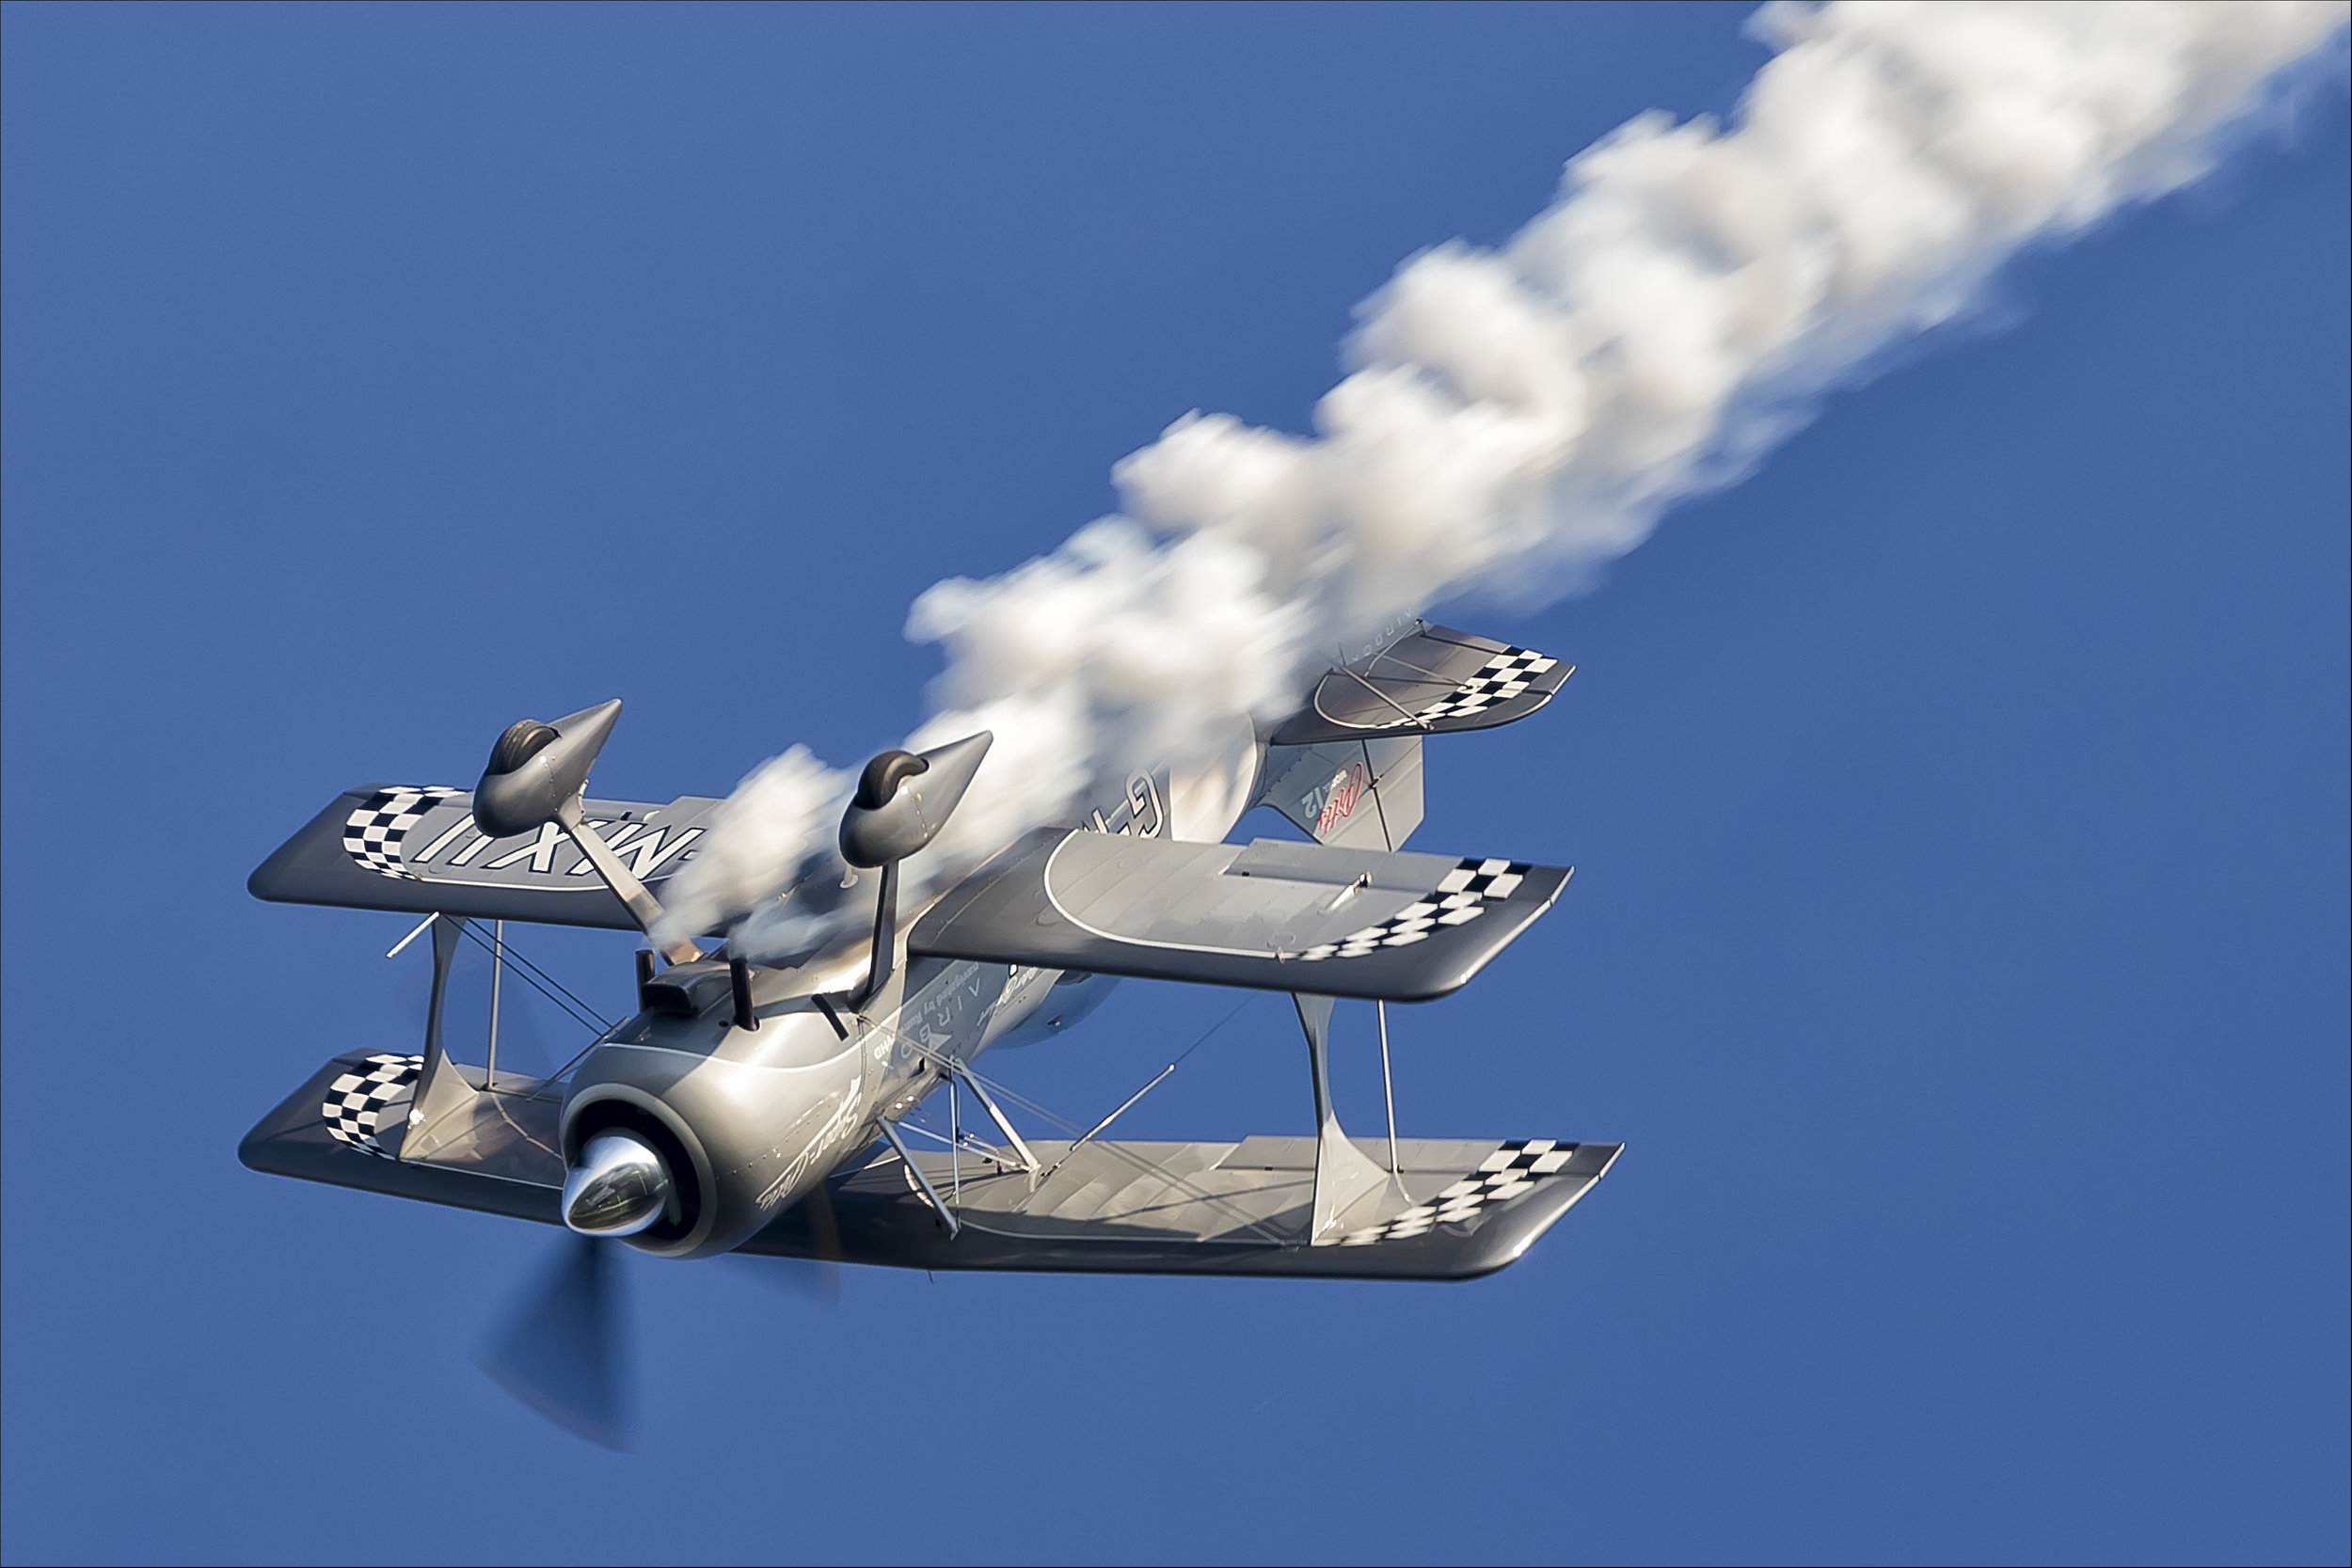 areobatic air display - air show - pitts special air display - air show uk - arobatic air display.jpg